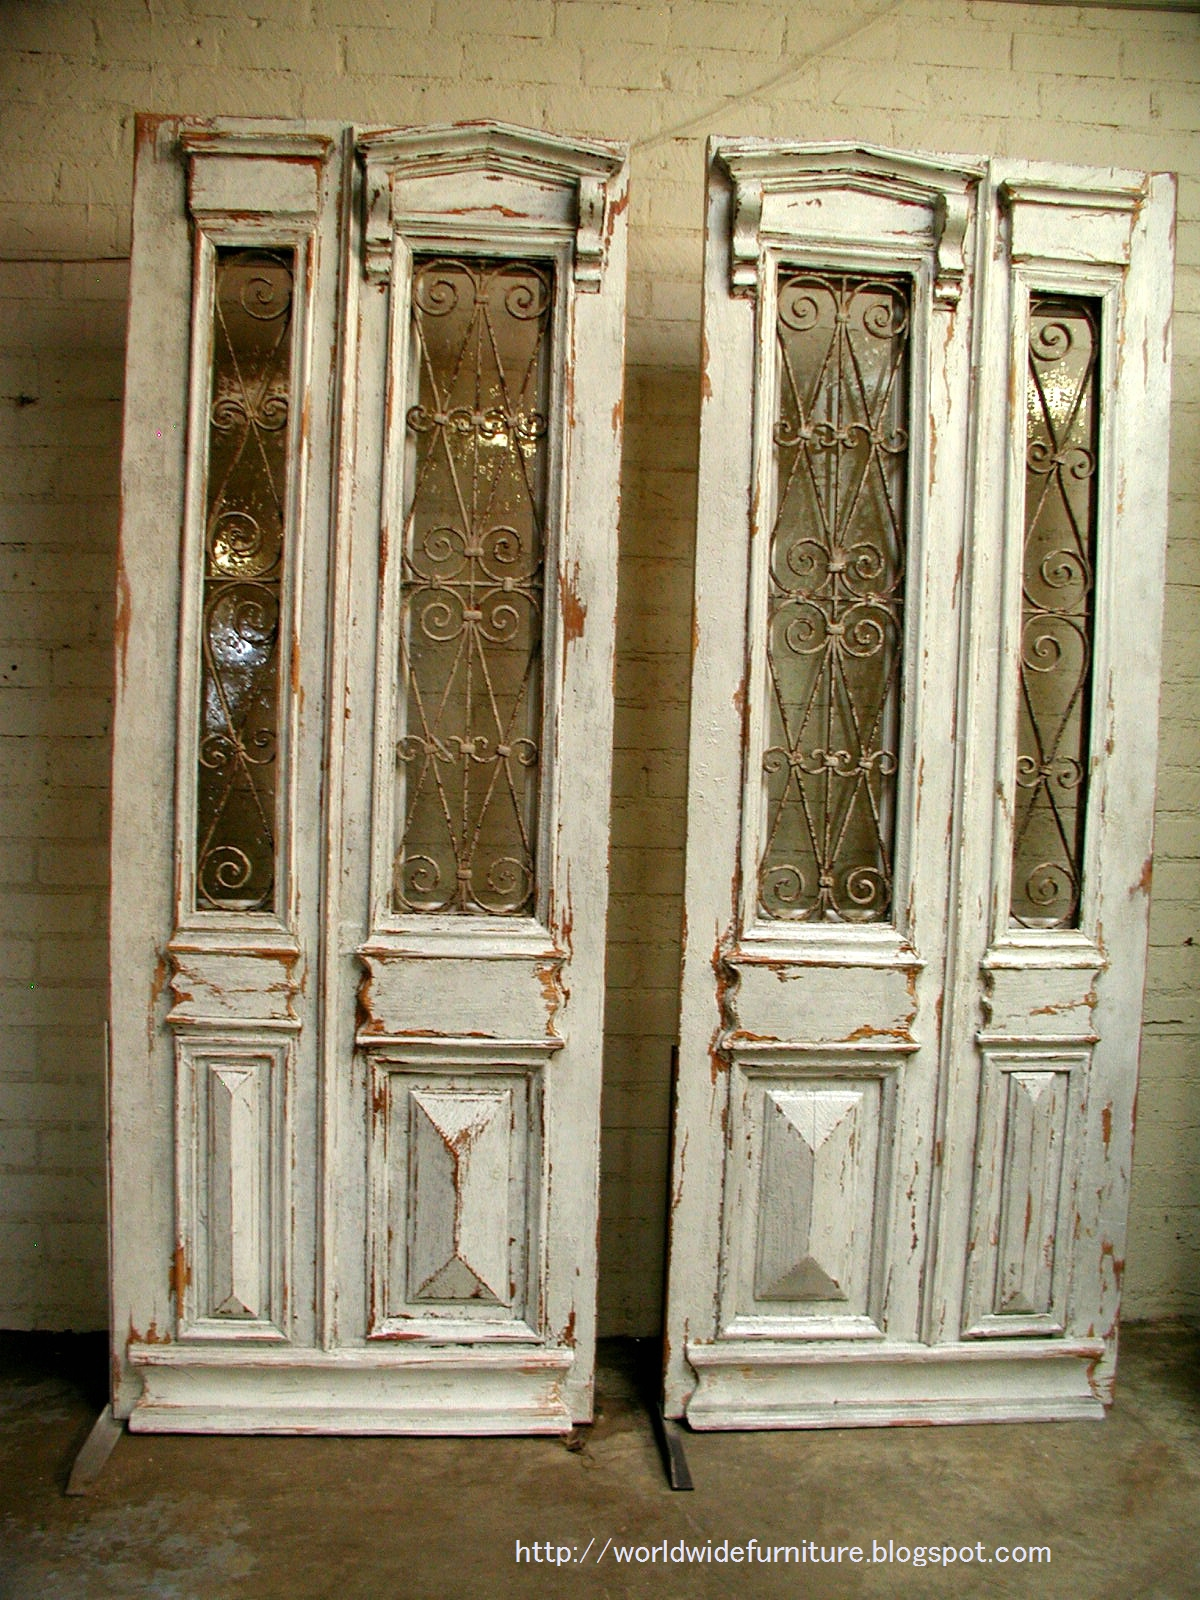 Wooden Doors: Vintage Wooden Doors For Sale